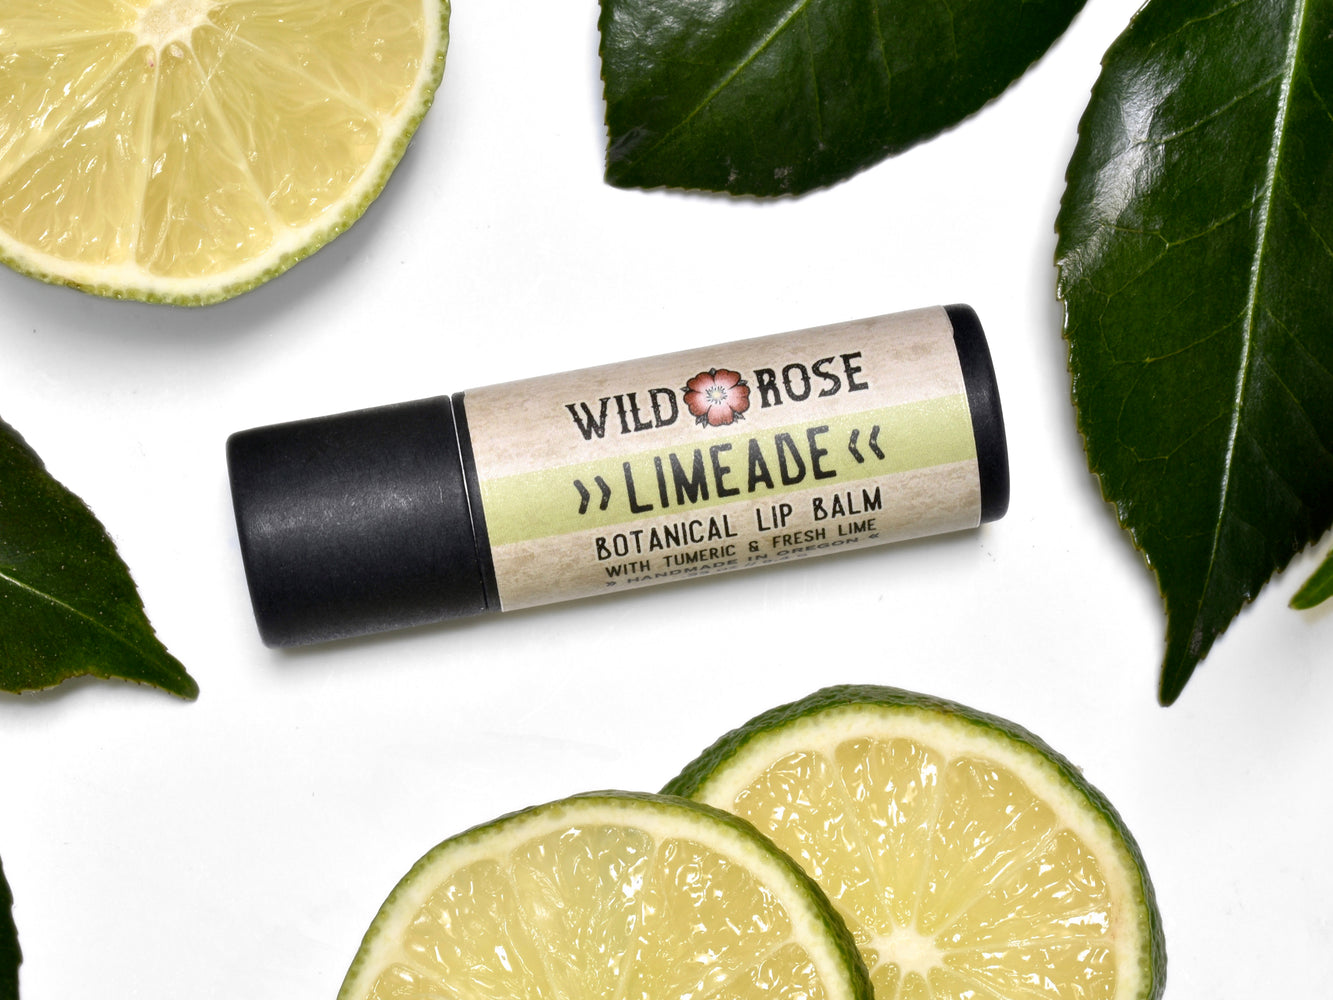 Limeade Lip Balm in Biodegradable Tube